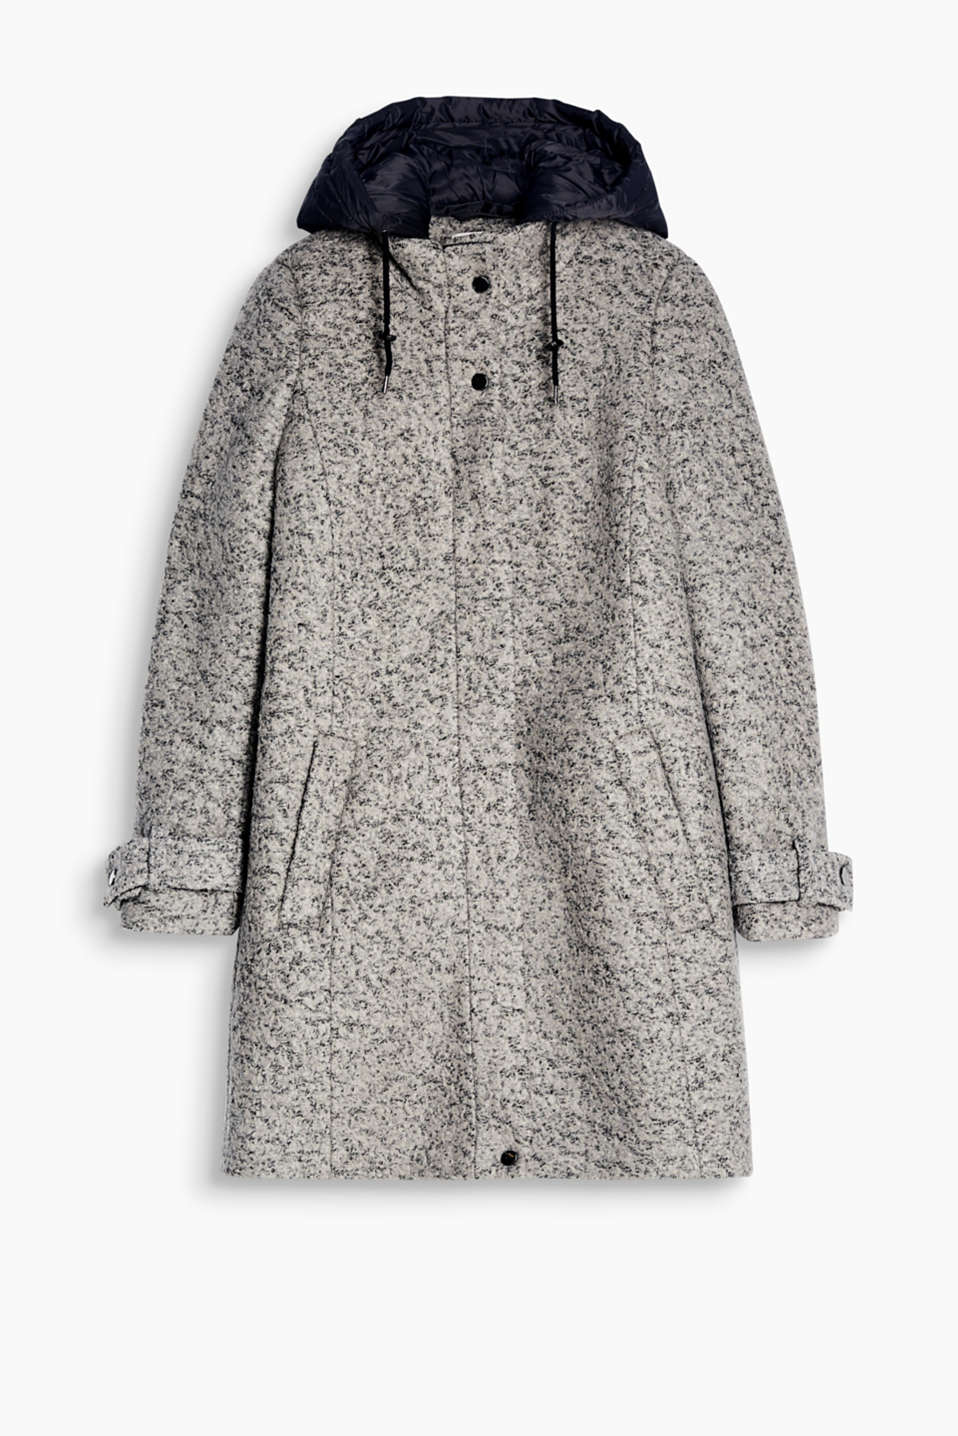 One coat, two looks: this bouclé coat with a detachable, quilted hood can look sporty one minute, chic the next!